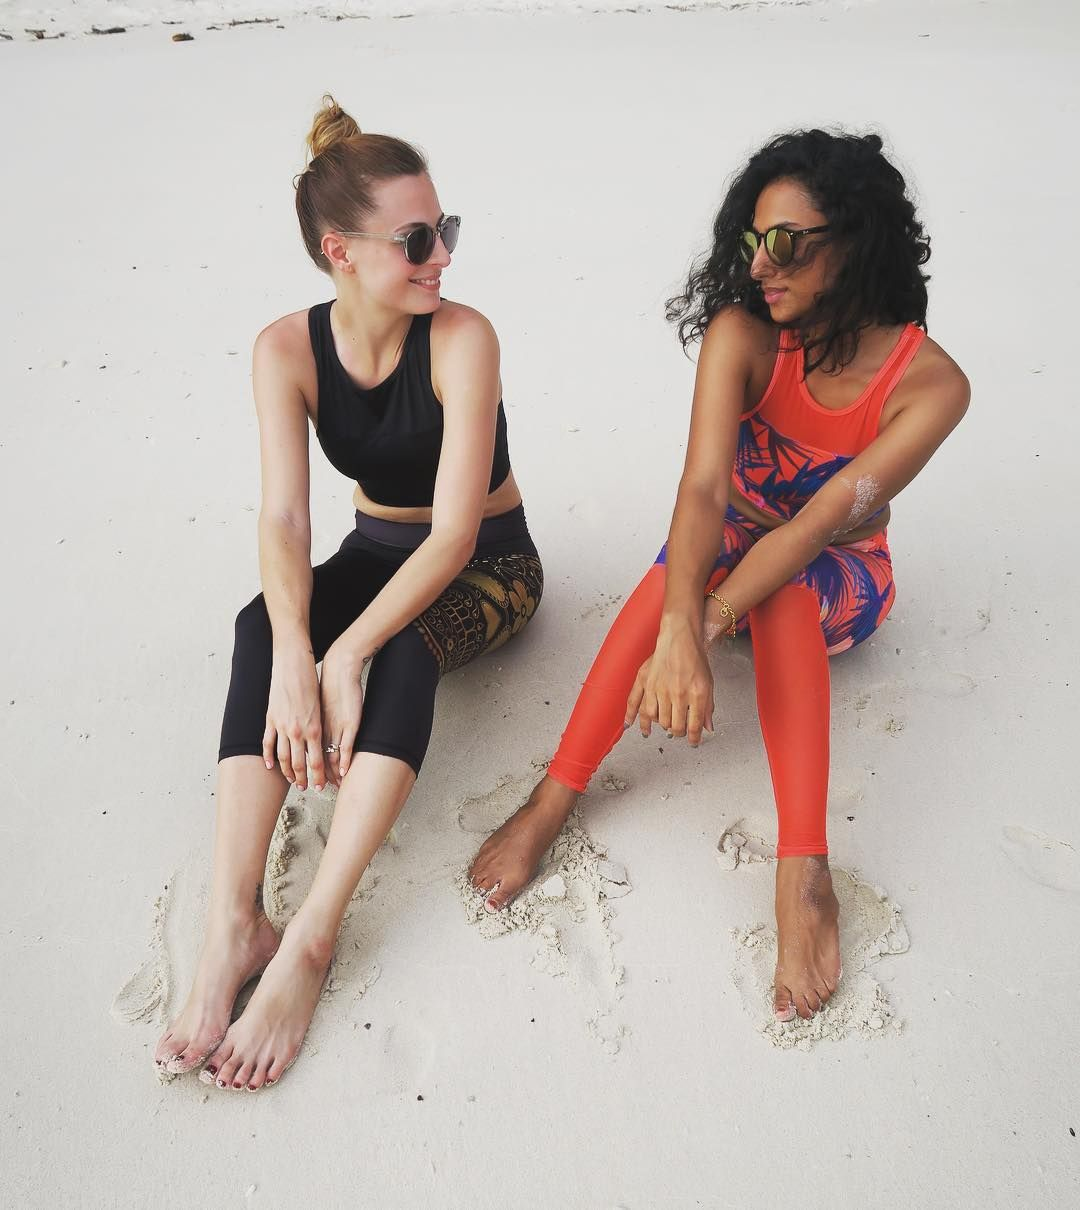 657fbdfb2a3a5c Rachel wears Anna leggings and crop top Jodie wears Catrina leggings and Black  Racer crop top. Available online. Link in bio.